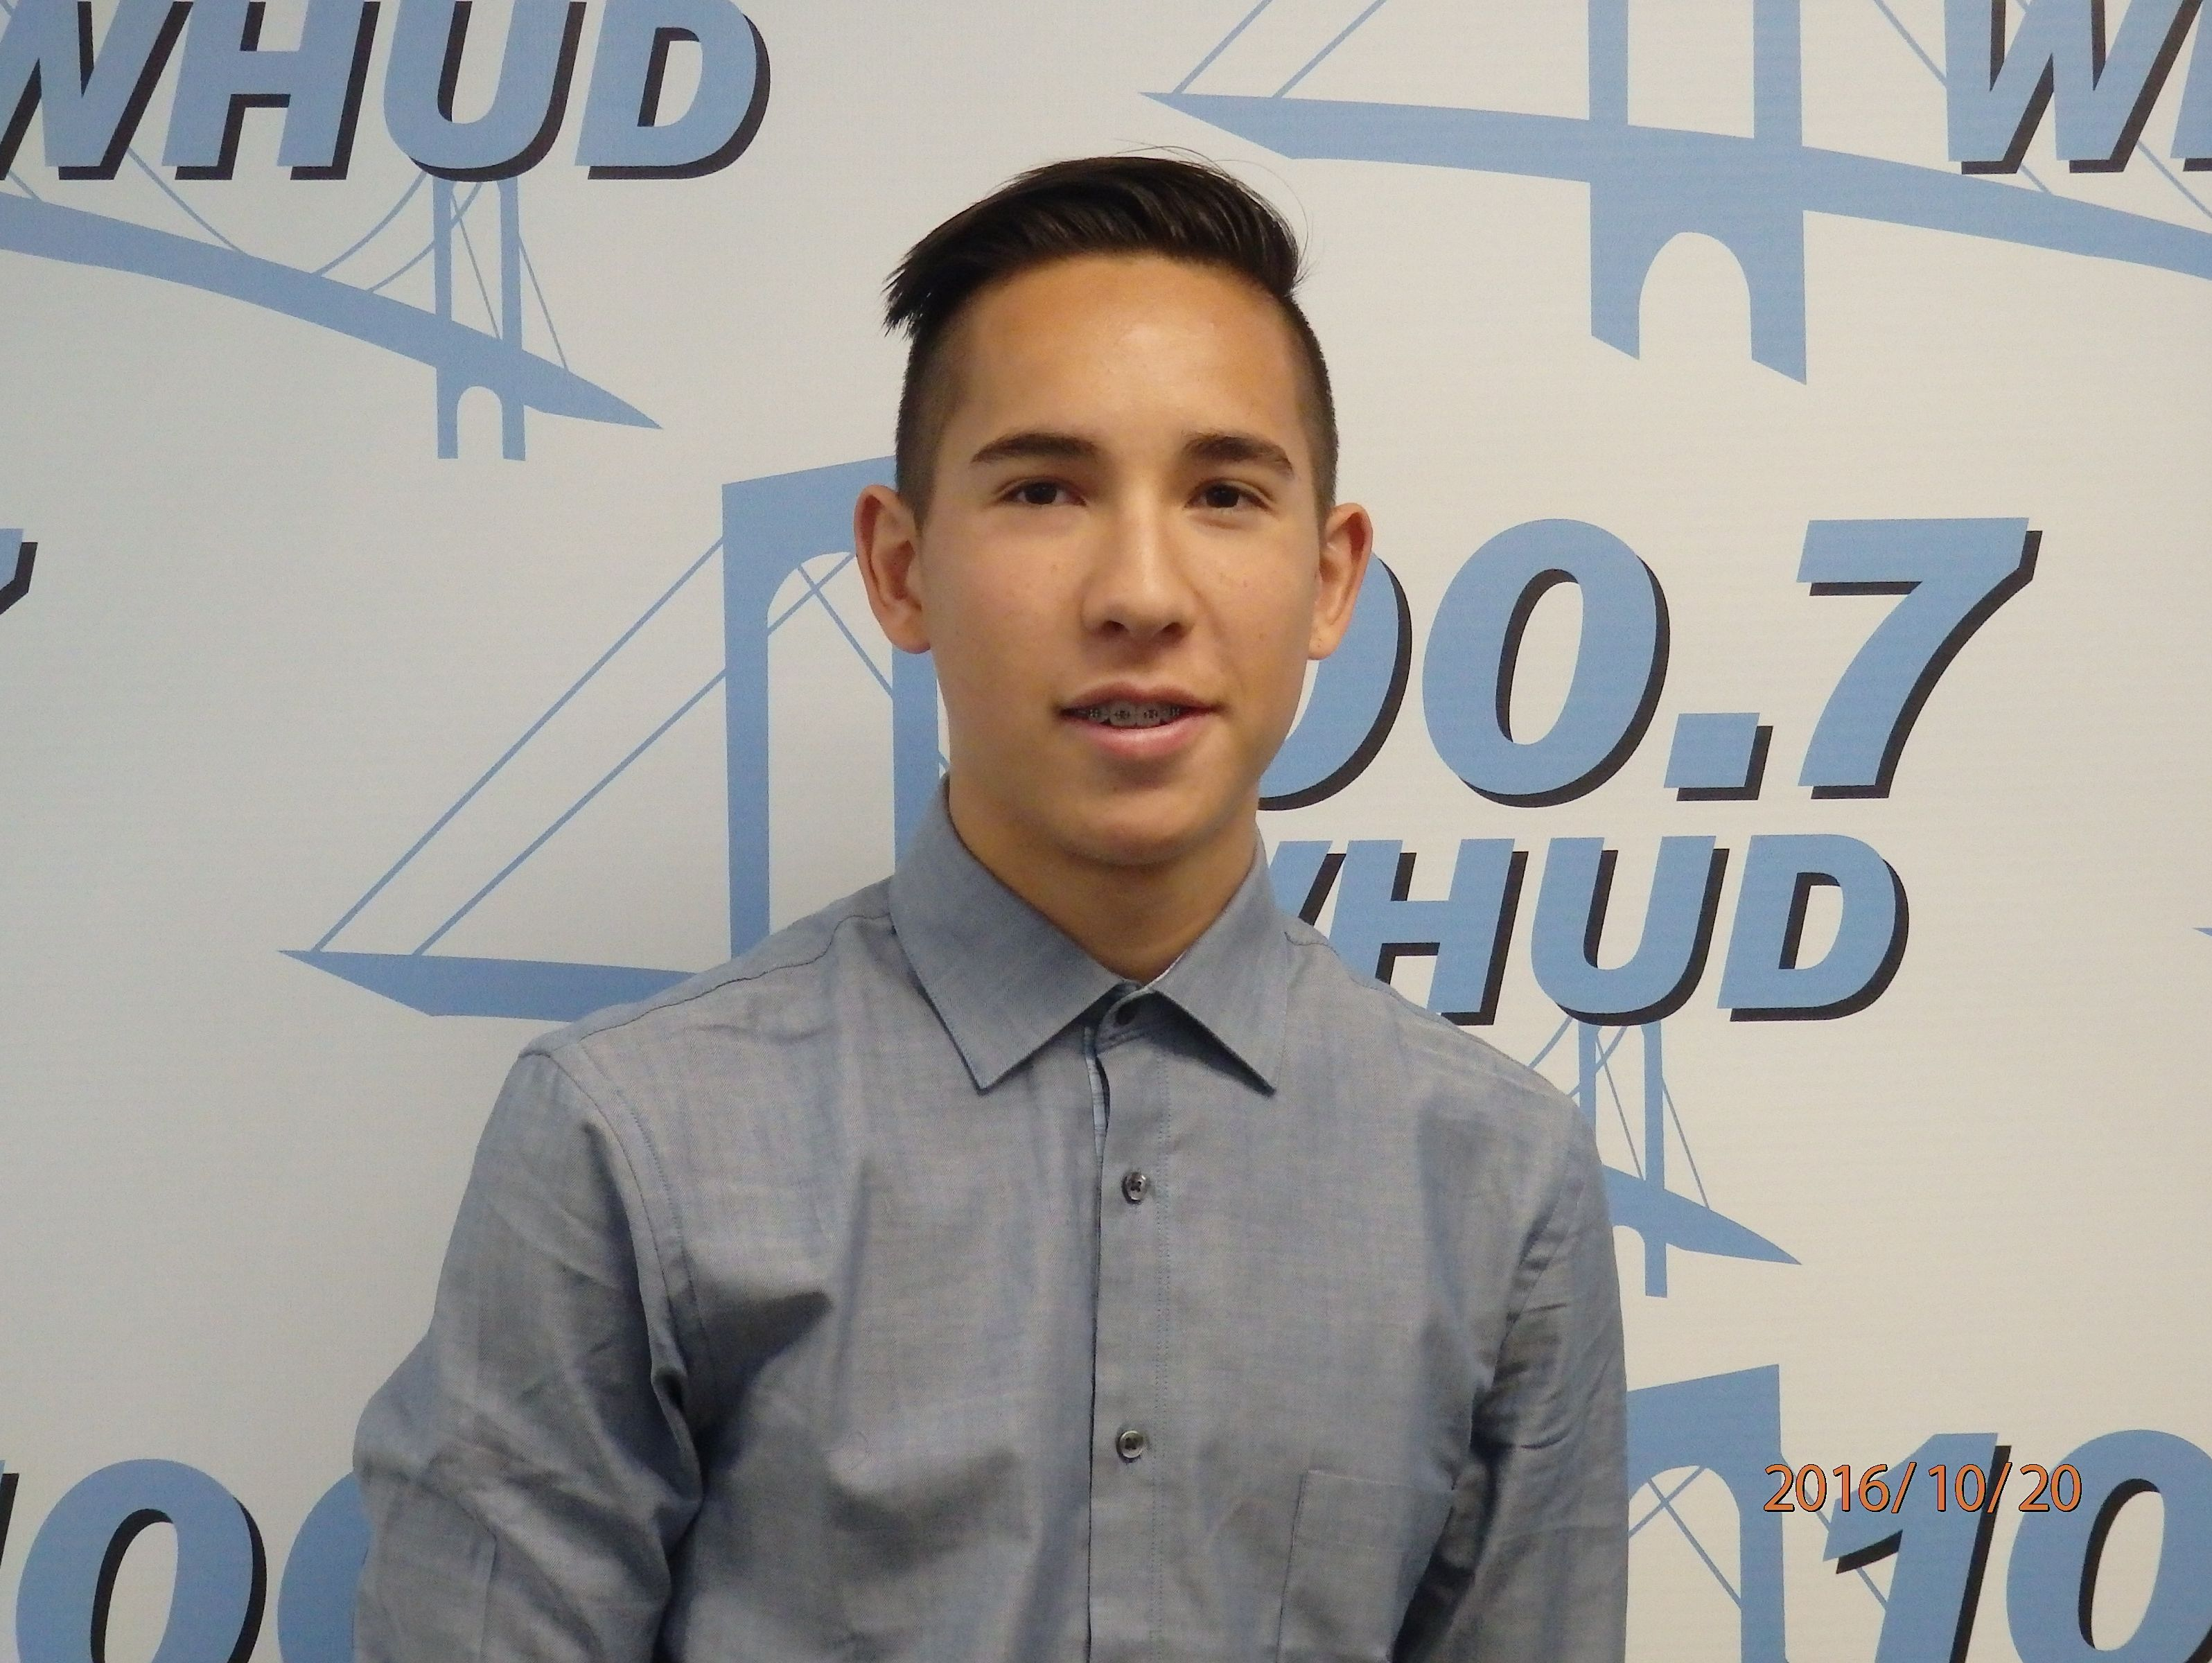 Hastings boys soccer player Oscar Pereira is the Con Edison Athlete of the Week.